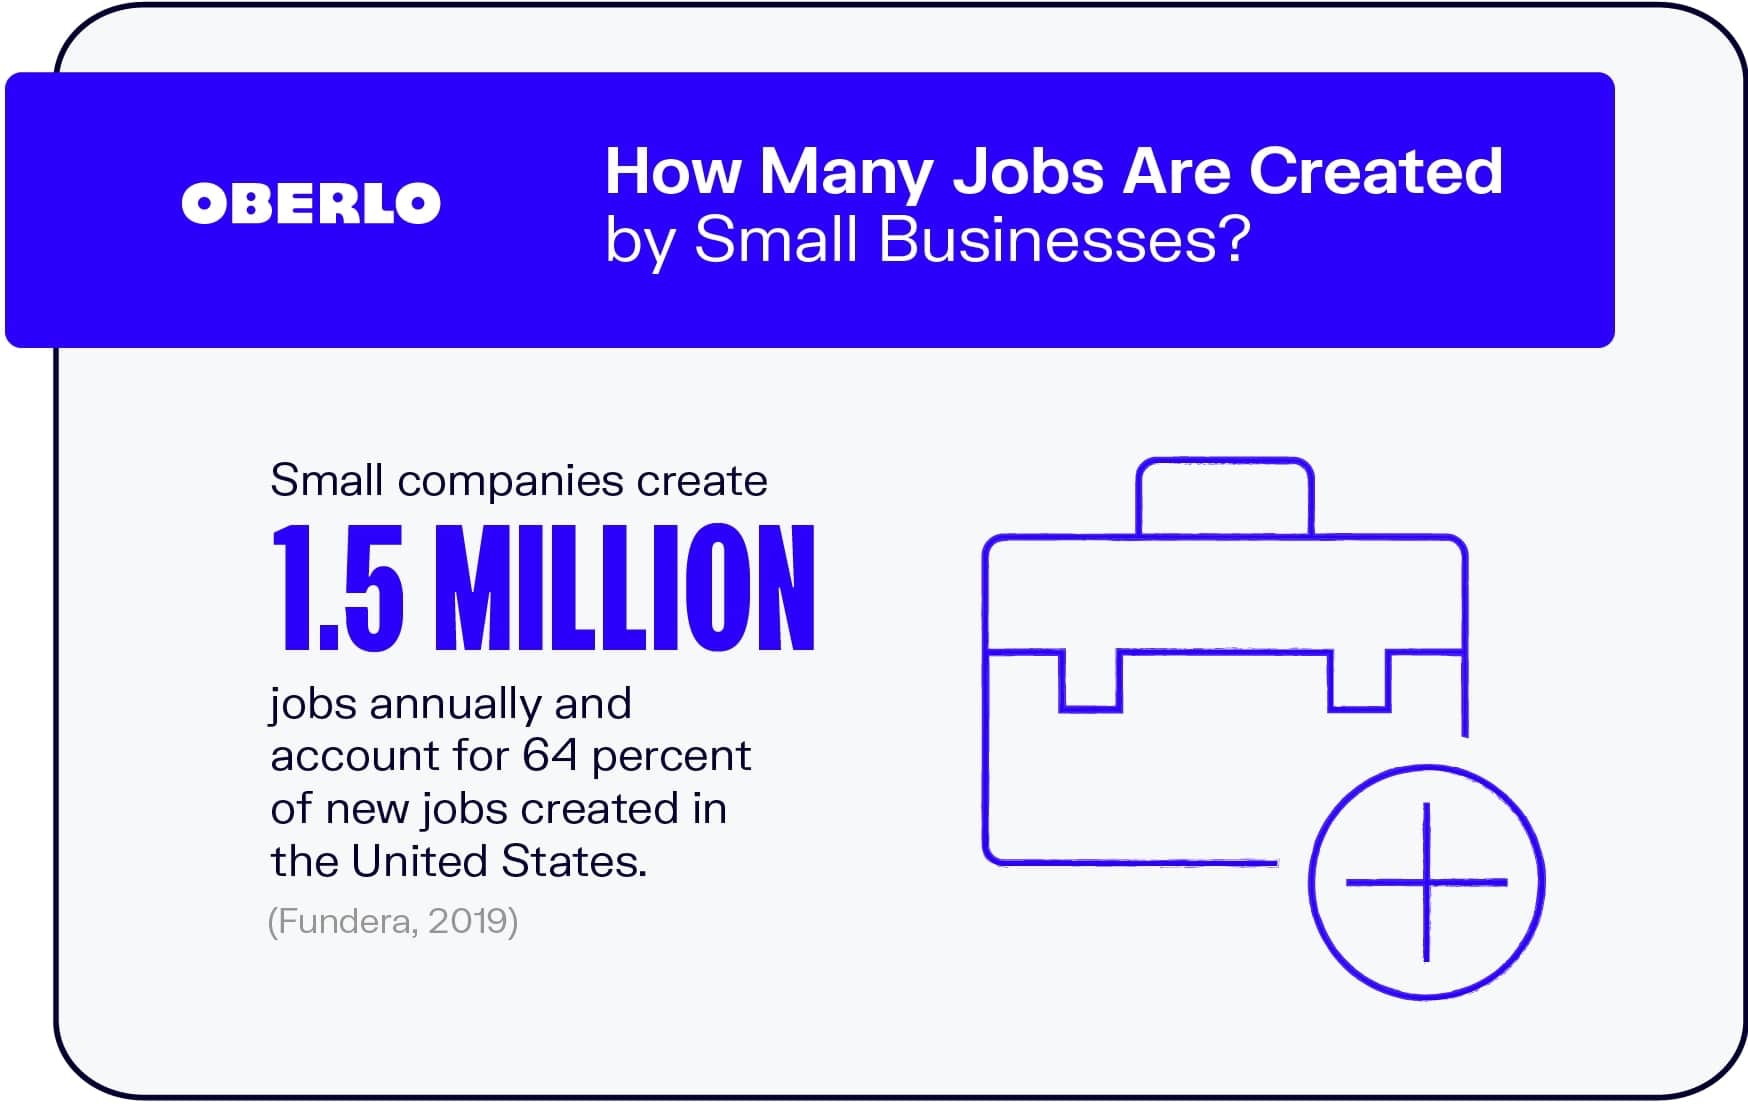 How Many Jobs Are Created by Small Businesses?